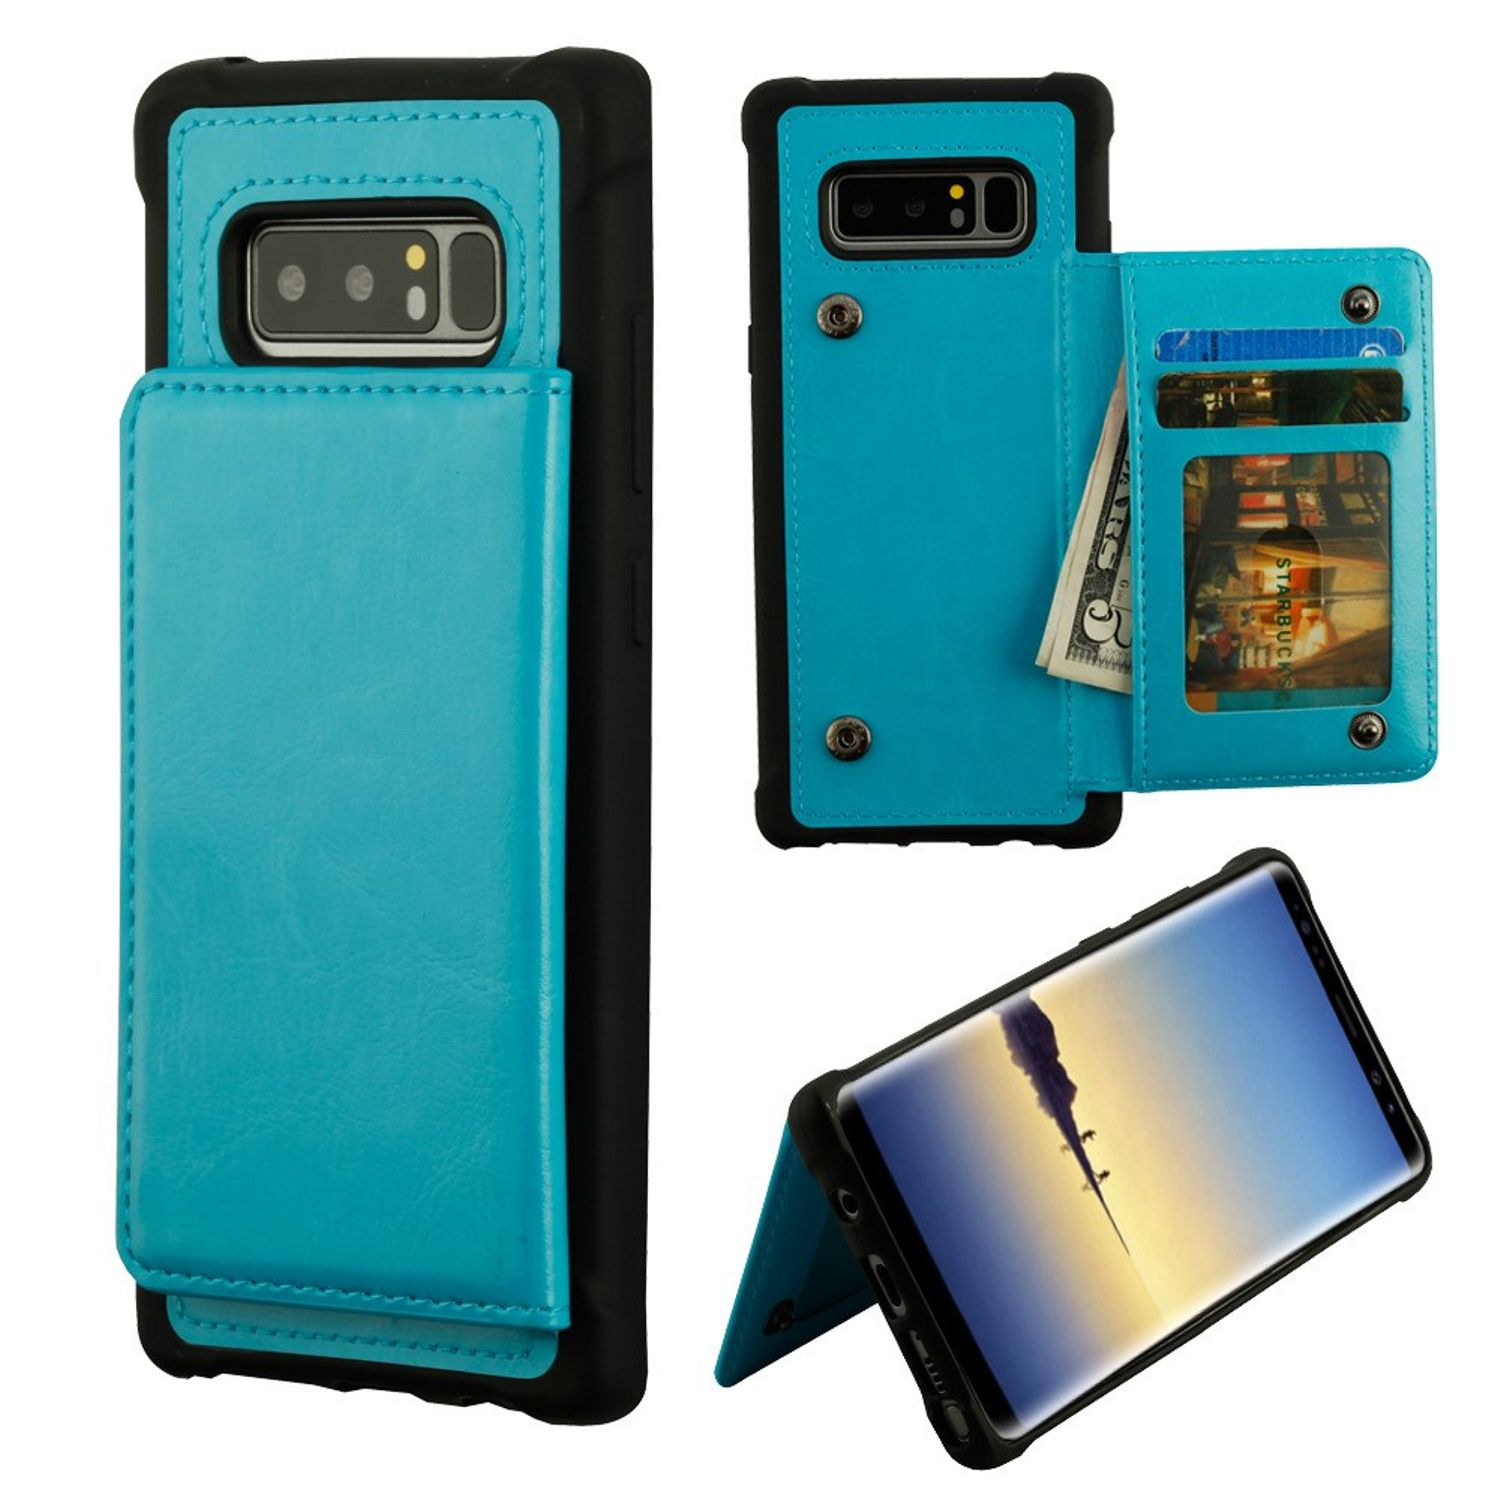 Samsung Galaxy Note 8 Case, by MyBat Executive Protector Stand Leather [Card Holder Slot] Wallet Pouch Case Cover For Samsung Galaxy Note 8, Blue/Black